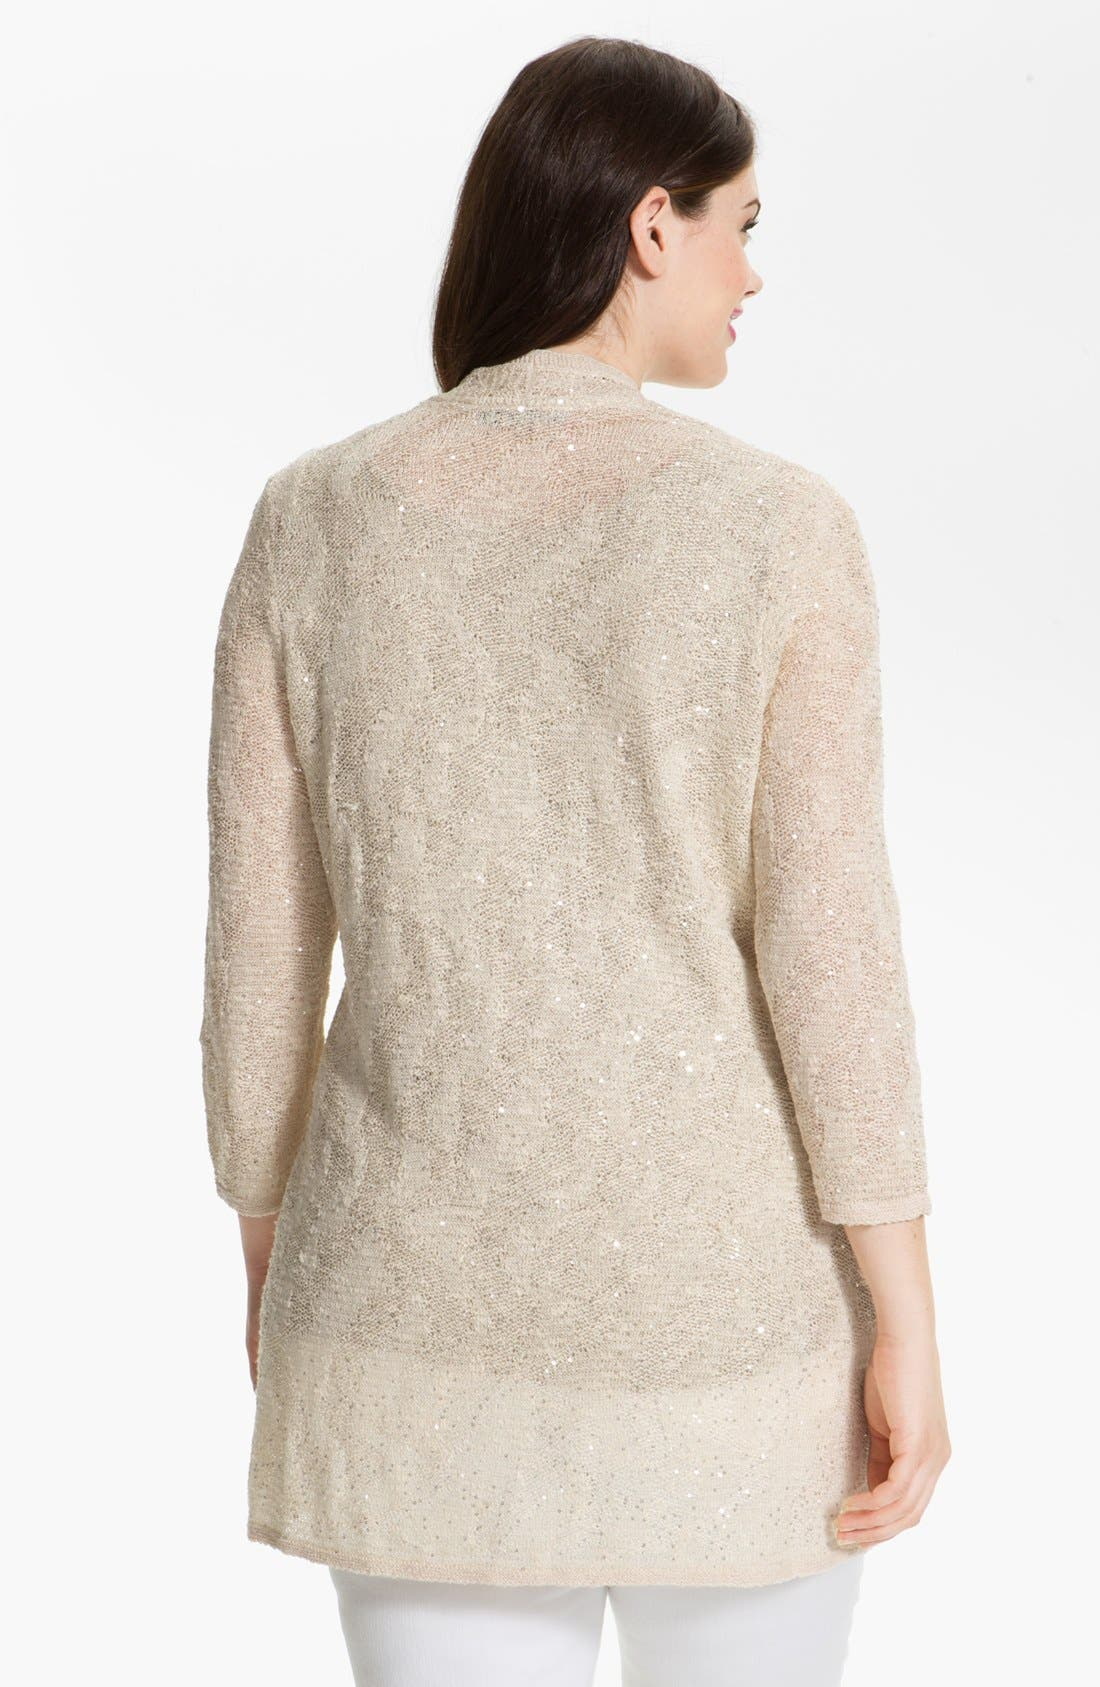 Alternate Image 2  - Nic + Zoe 'Sparkling Skies' Embellished Cardigan (Plus Size)